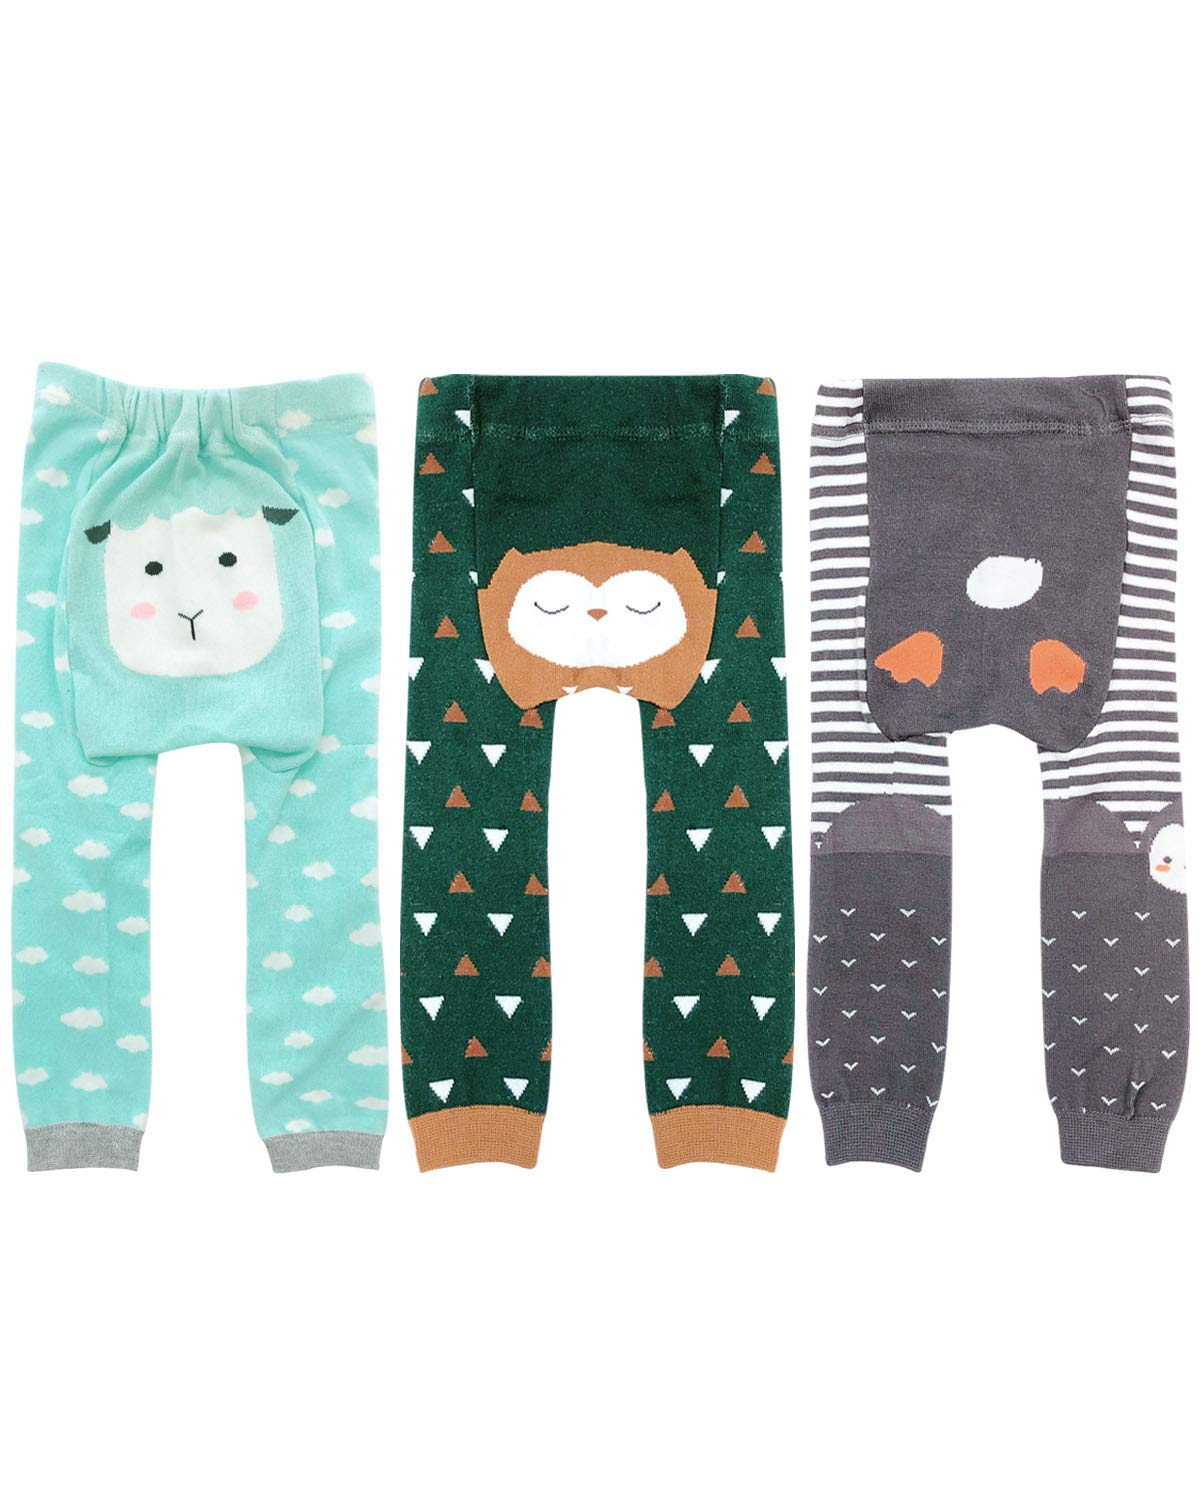 Wrapables Baby & Toddler Fun for All Leggings (Set of 3)